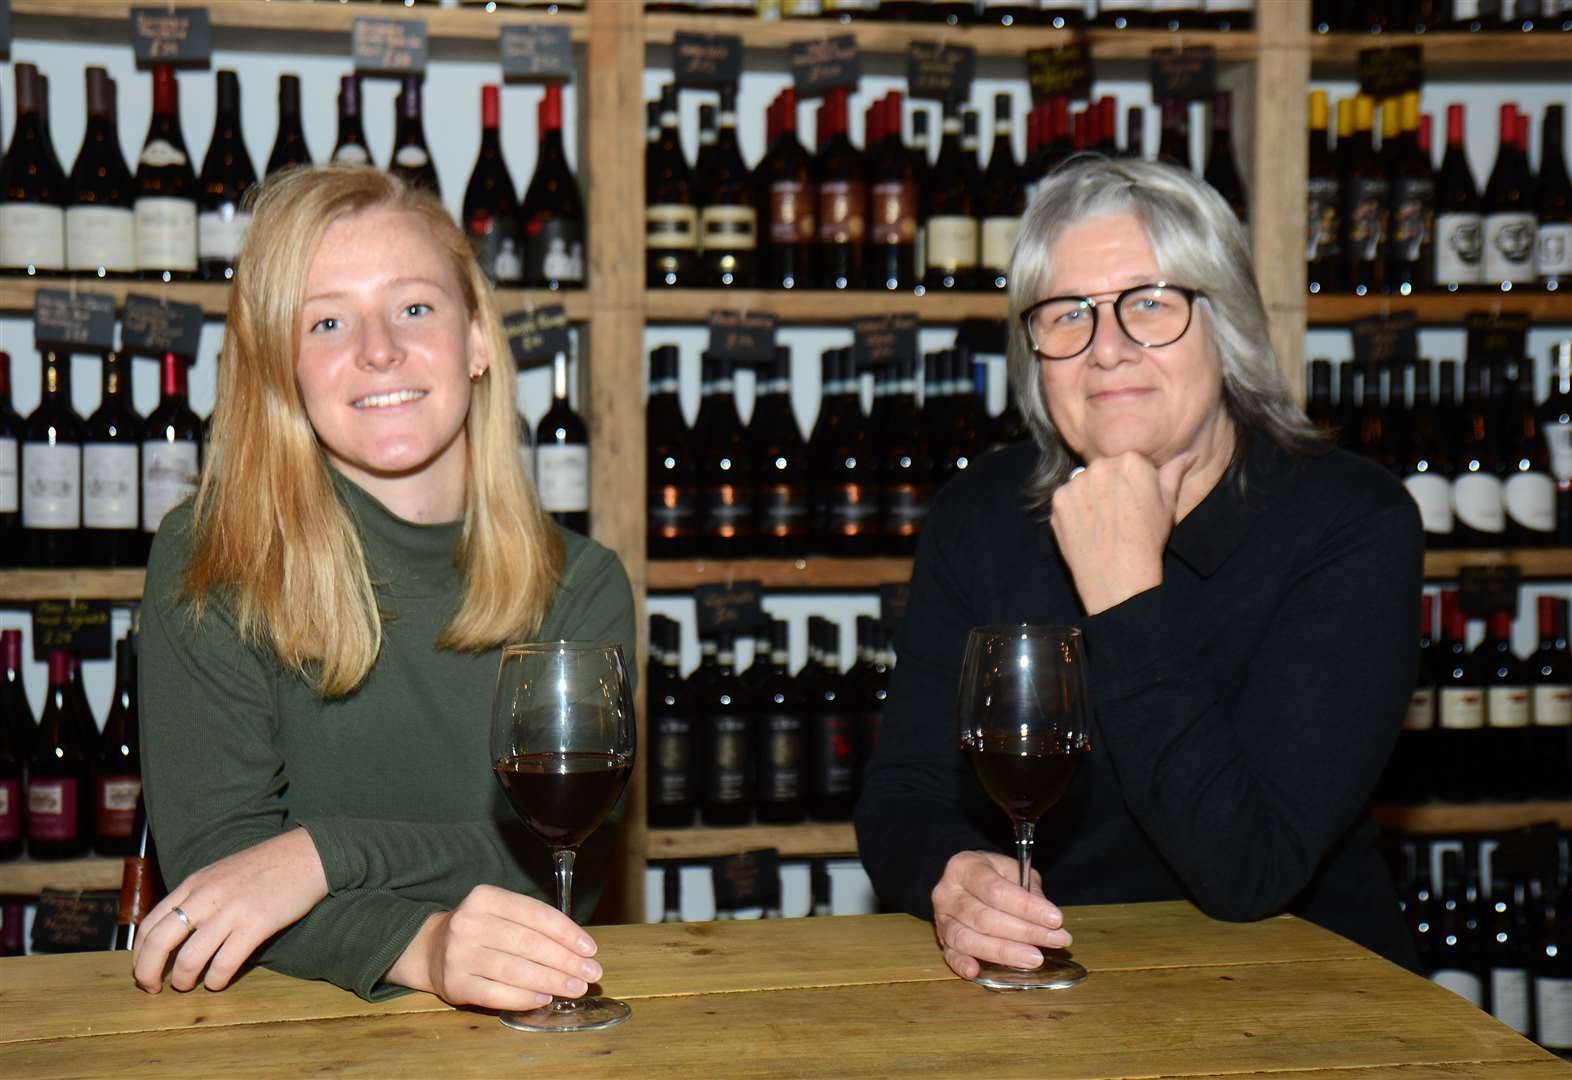 Christmas spirit: Stortford wine bar's tastings to support night shelter